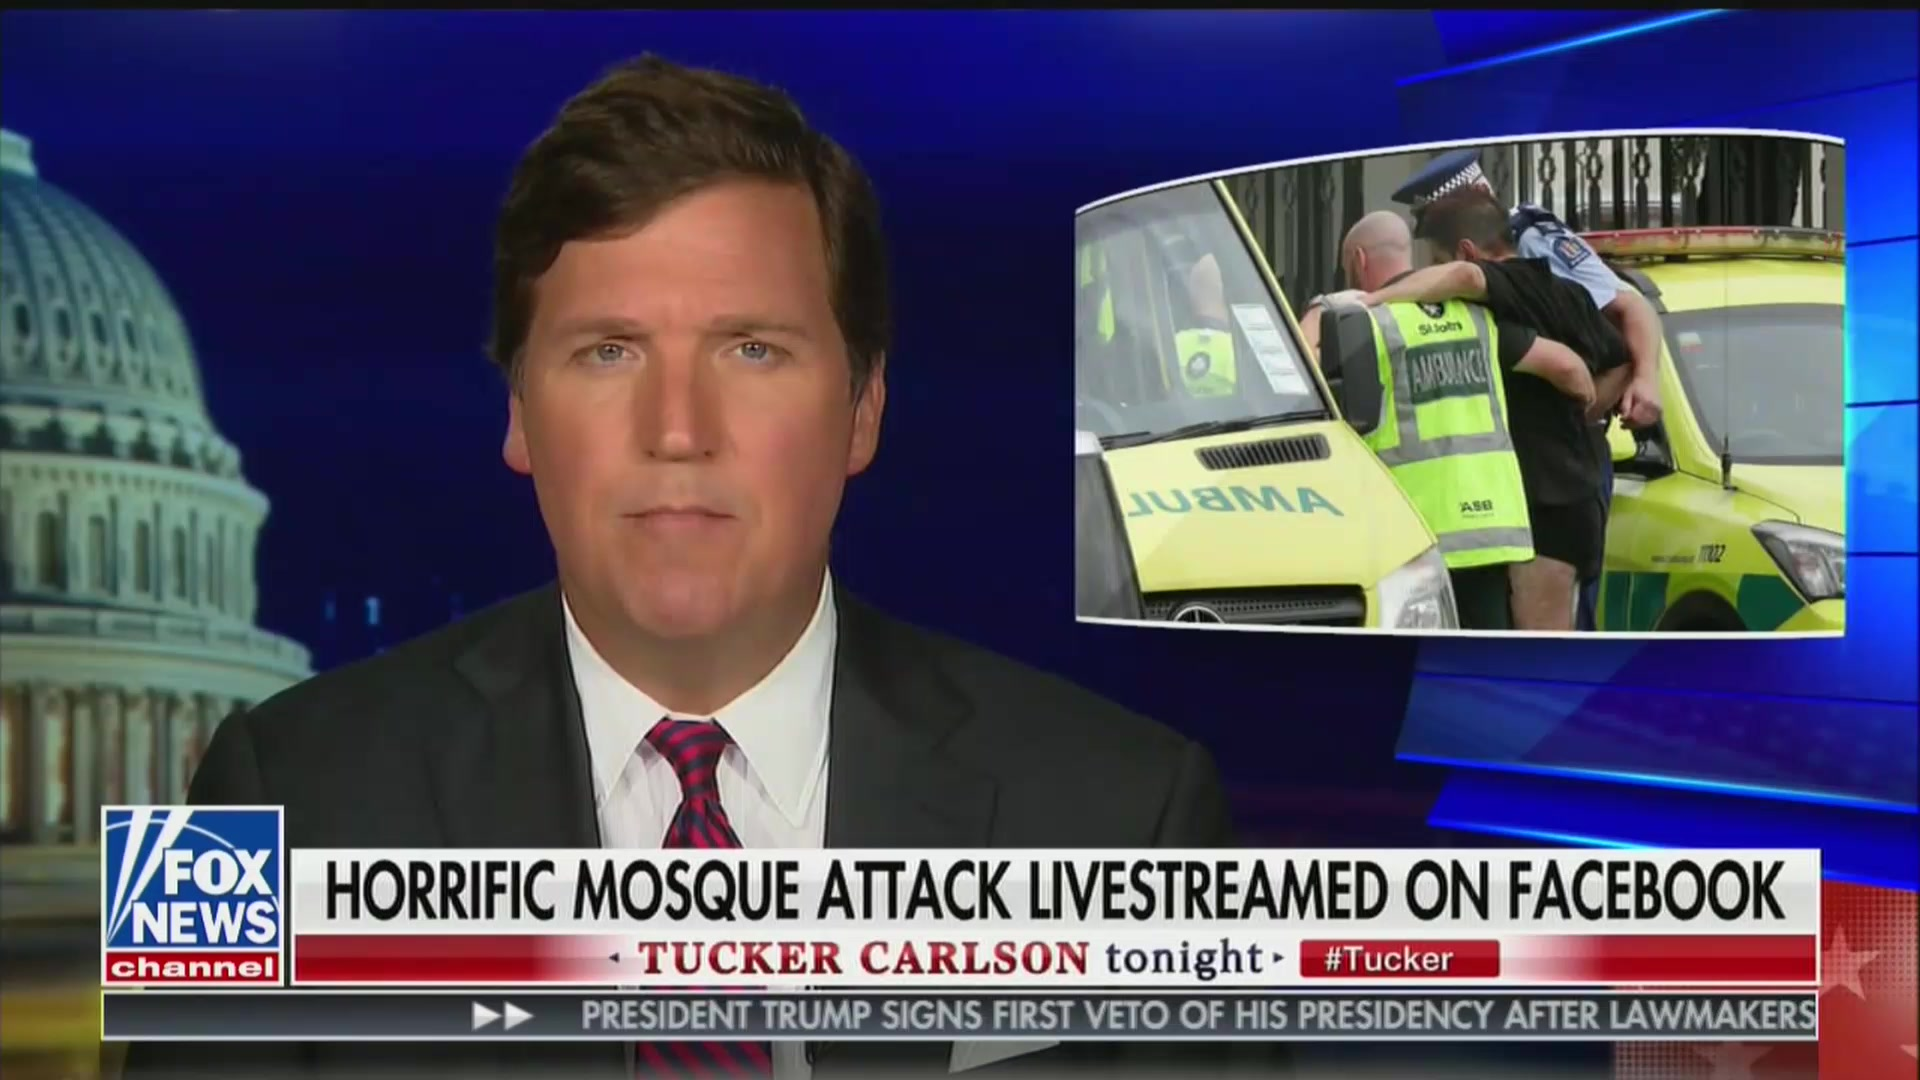 Tucker Carlson Shares New Zealand Shooter's Photo On-Air, Uses Massacre to Attack AOC